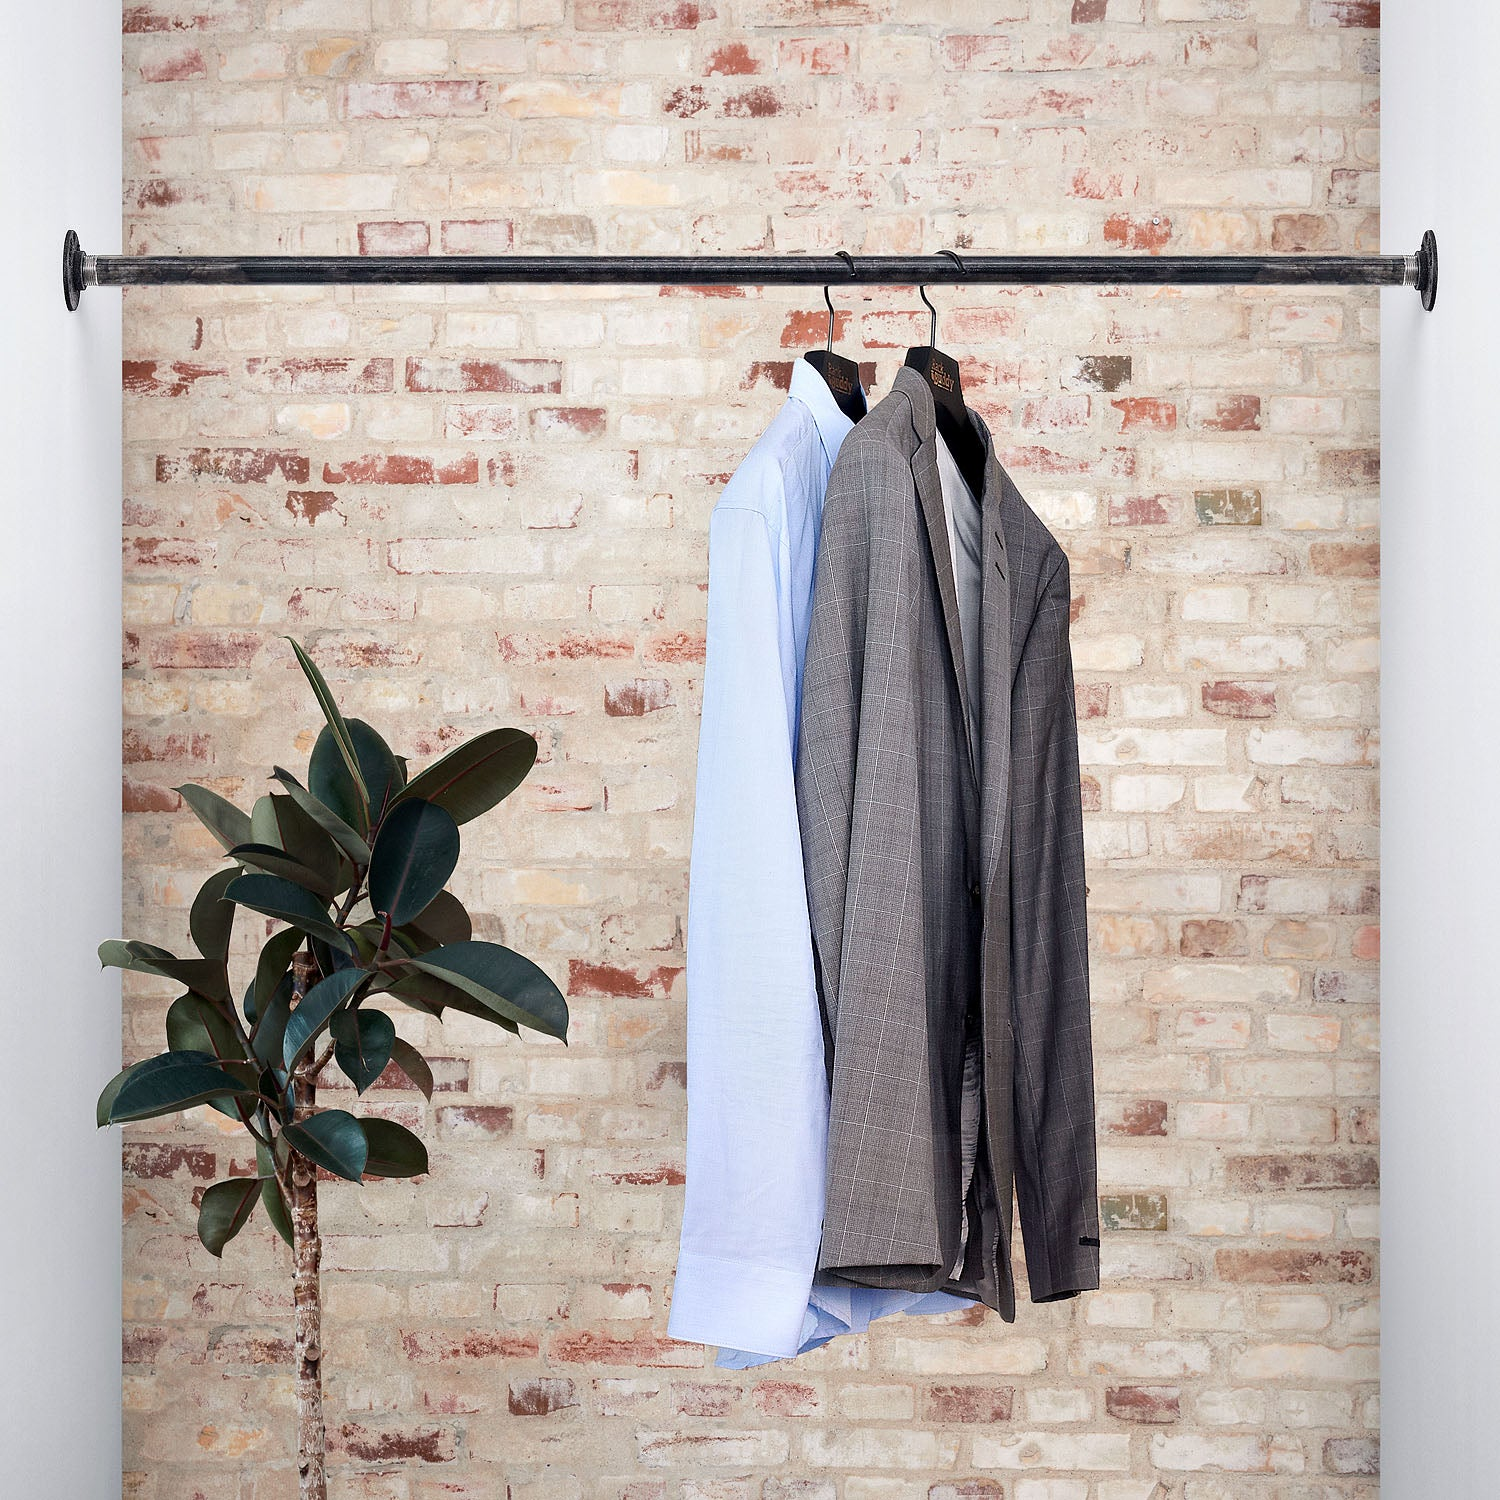 RackBuddy Logan – Wall-mounted clothing rail between two walls